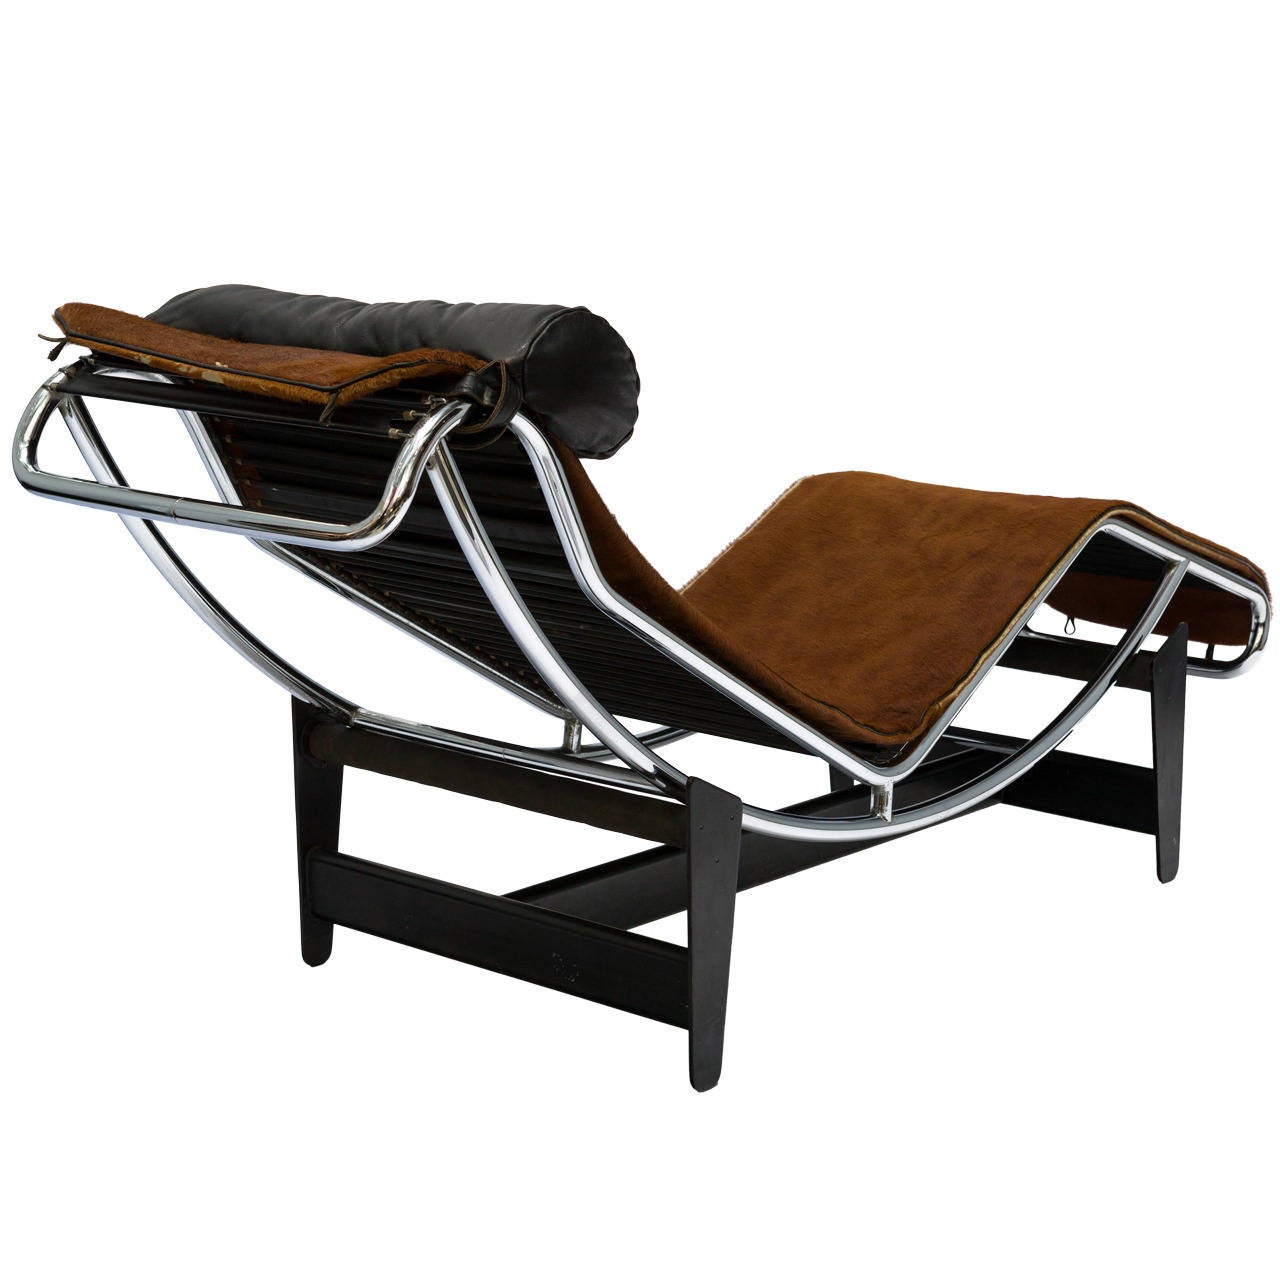 le corbusier lc4 chaise lounge chair in cowhide for sale. Black Bedroom Furniture Sets. Home Design Ideas